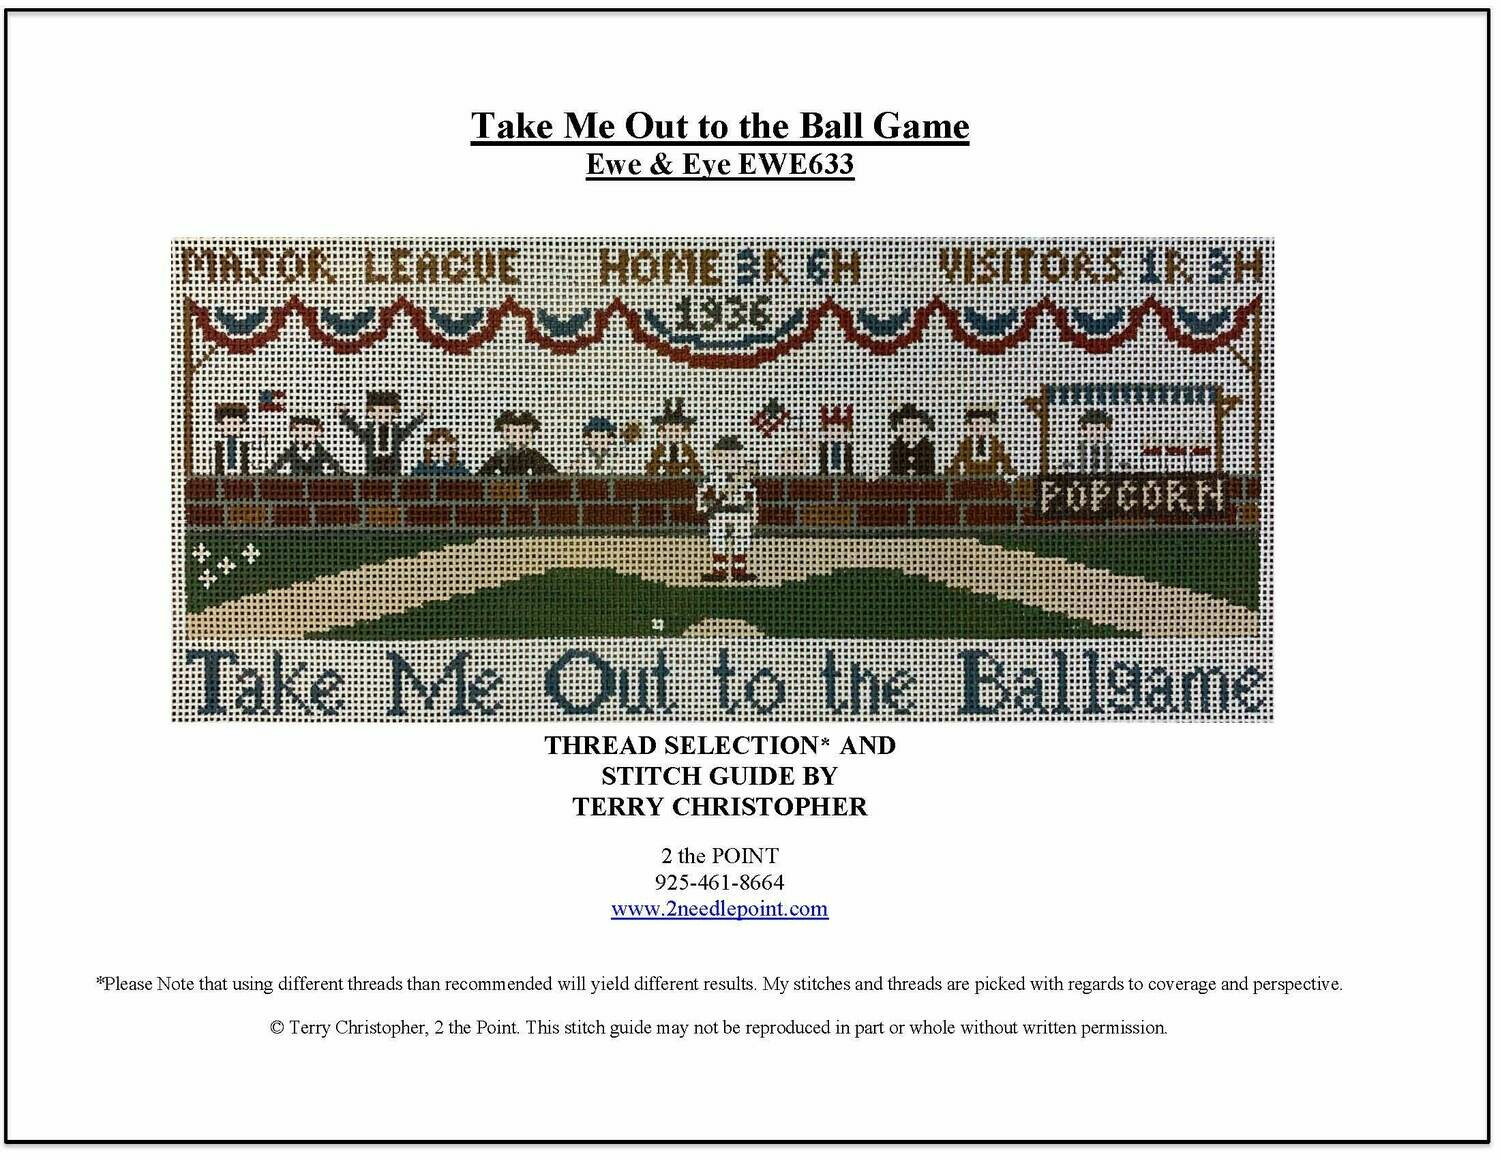 Ewe & Eye,  Take Me Out to the Ball Game EWE633